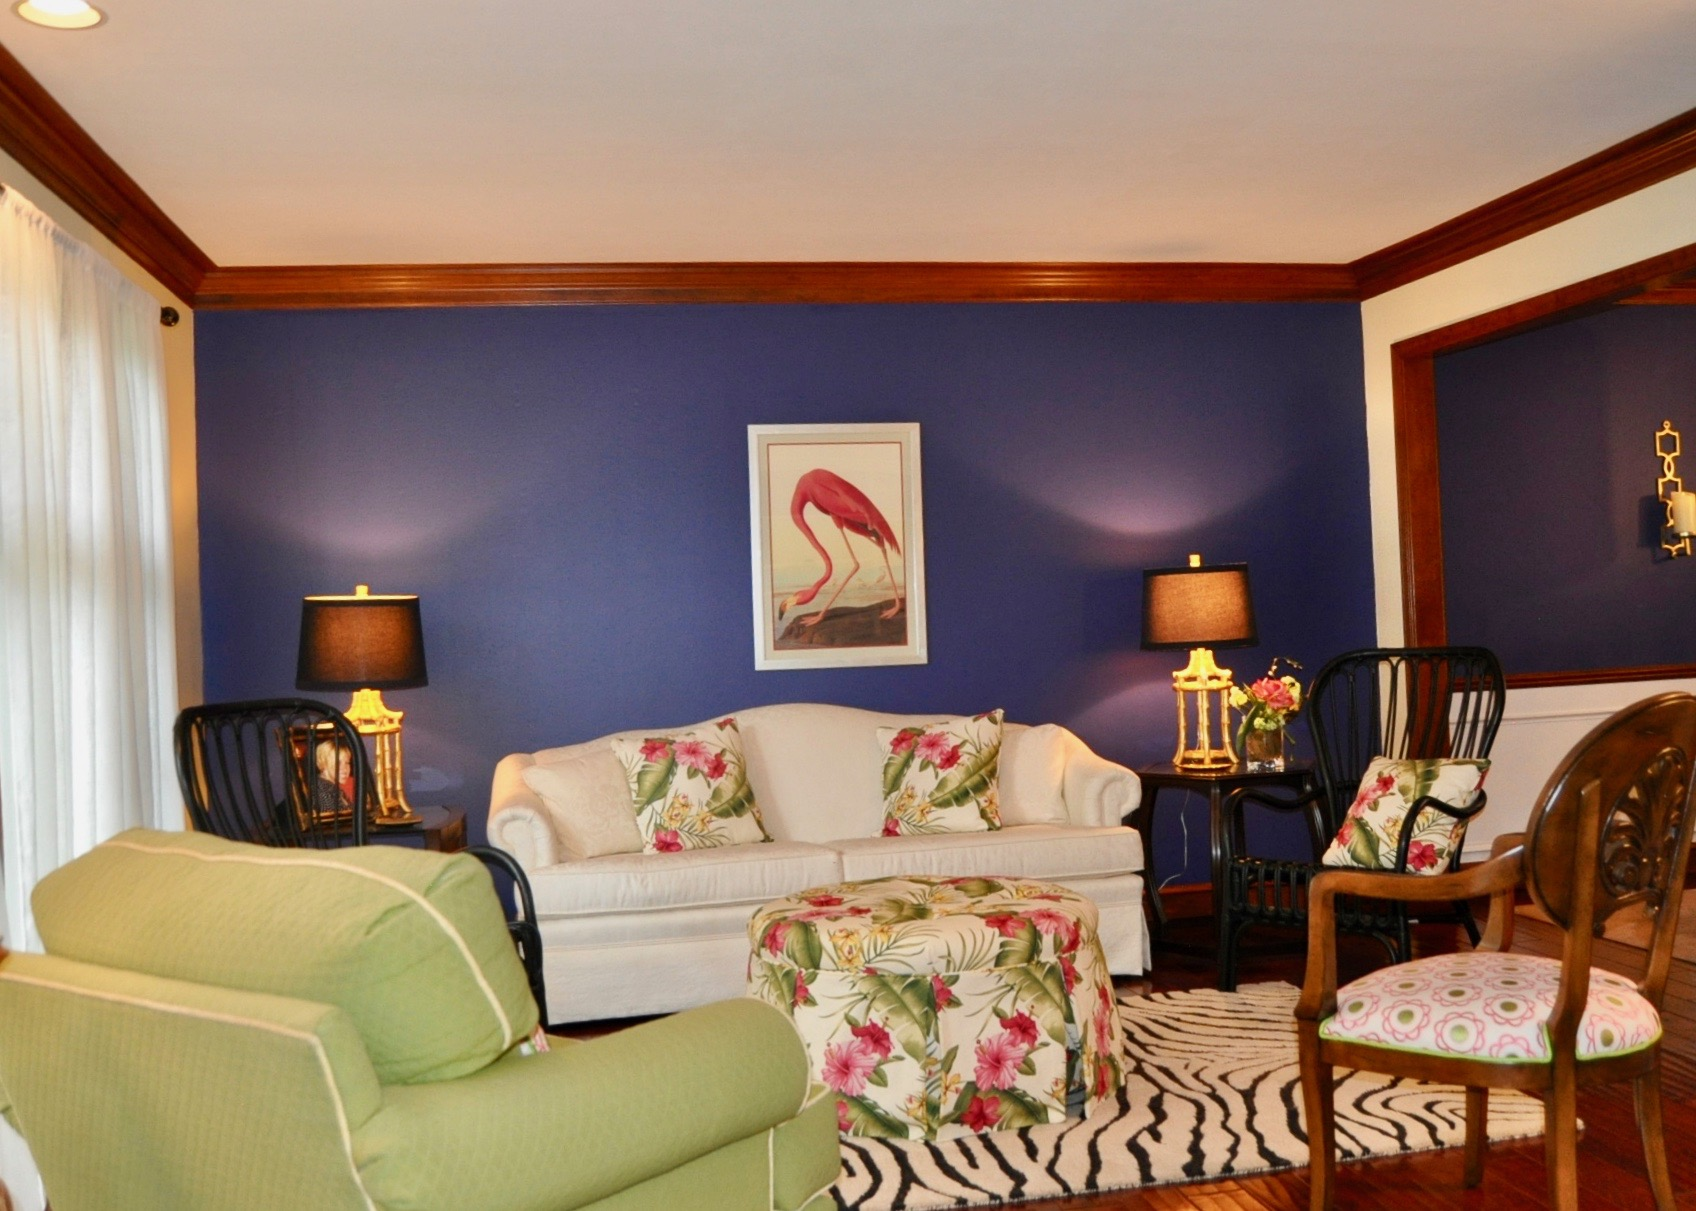 Cohesive color palette throughout the home